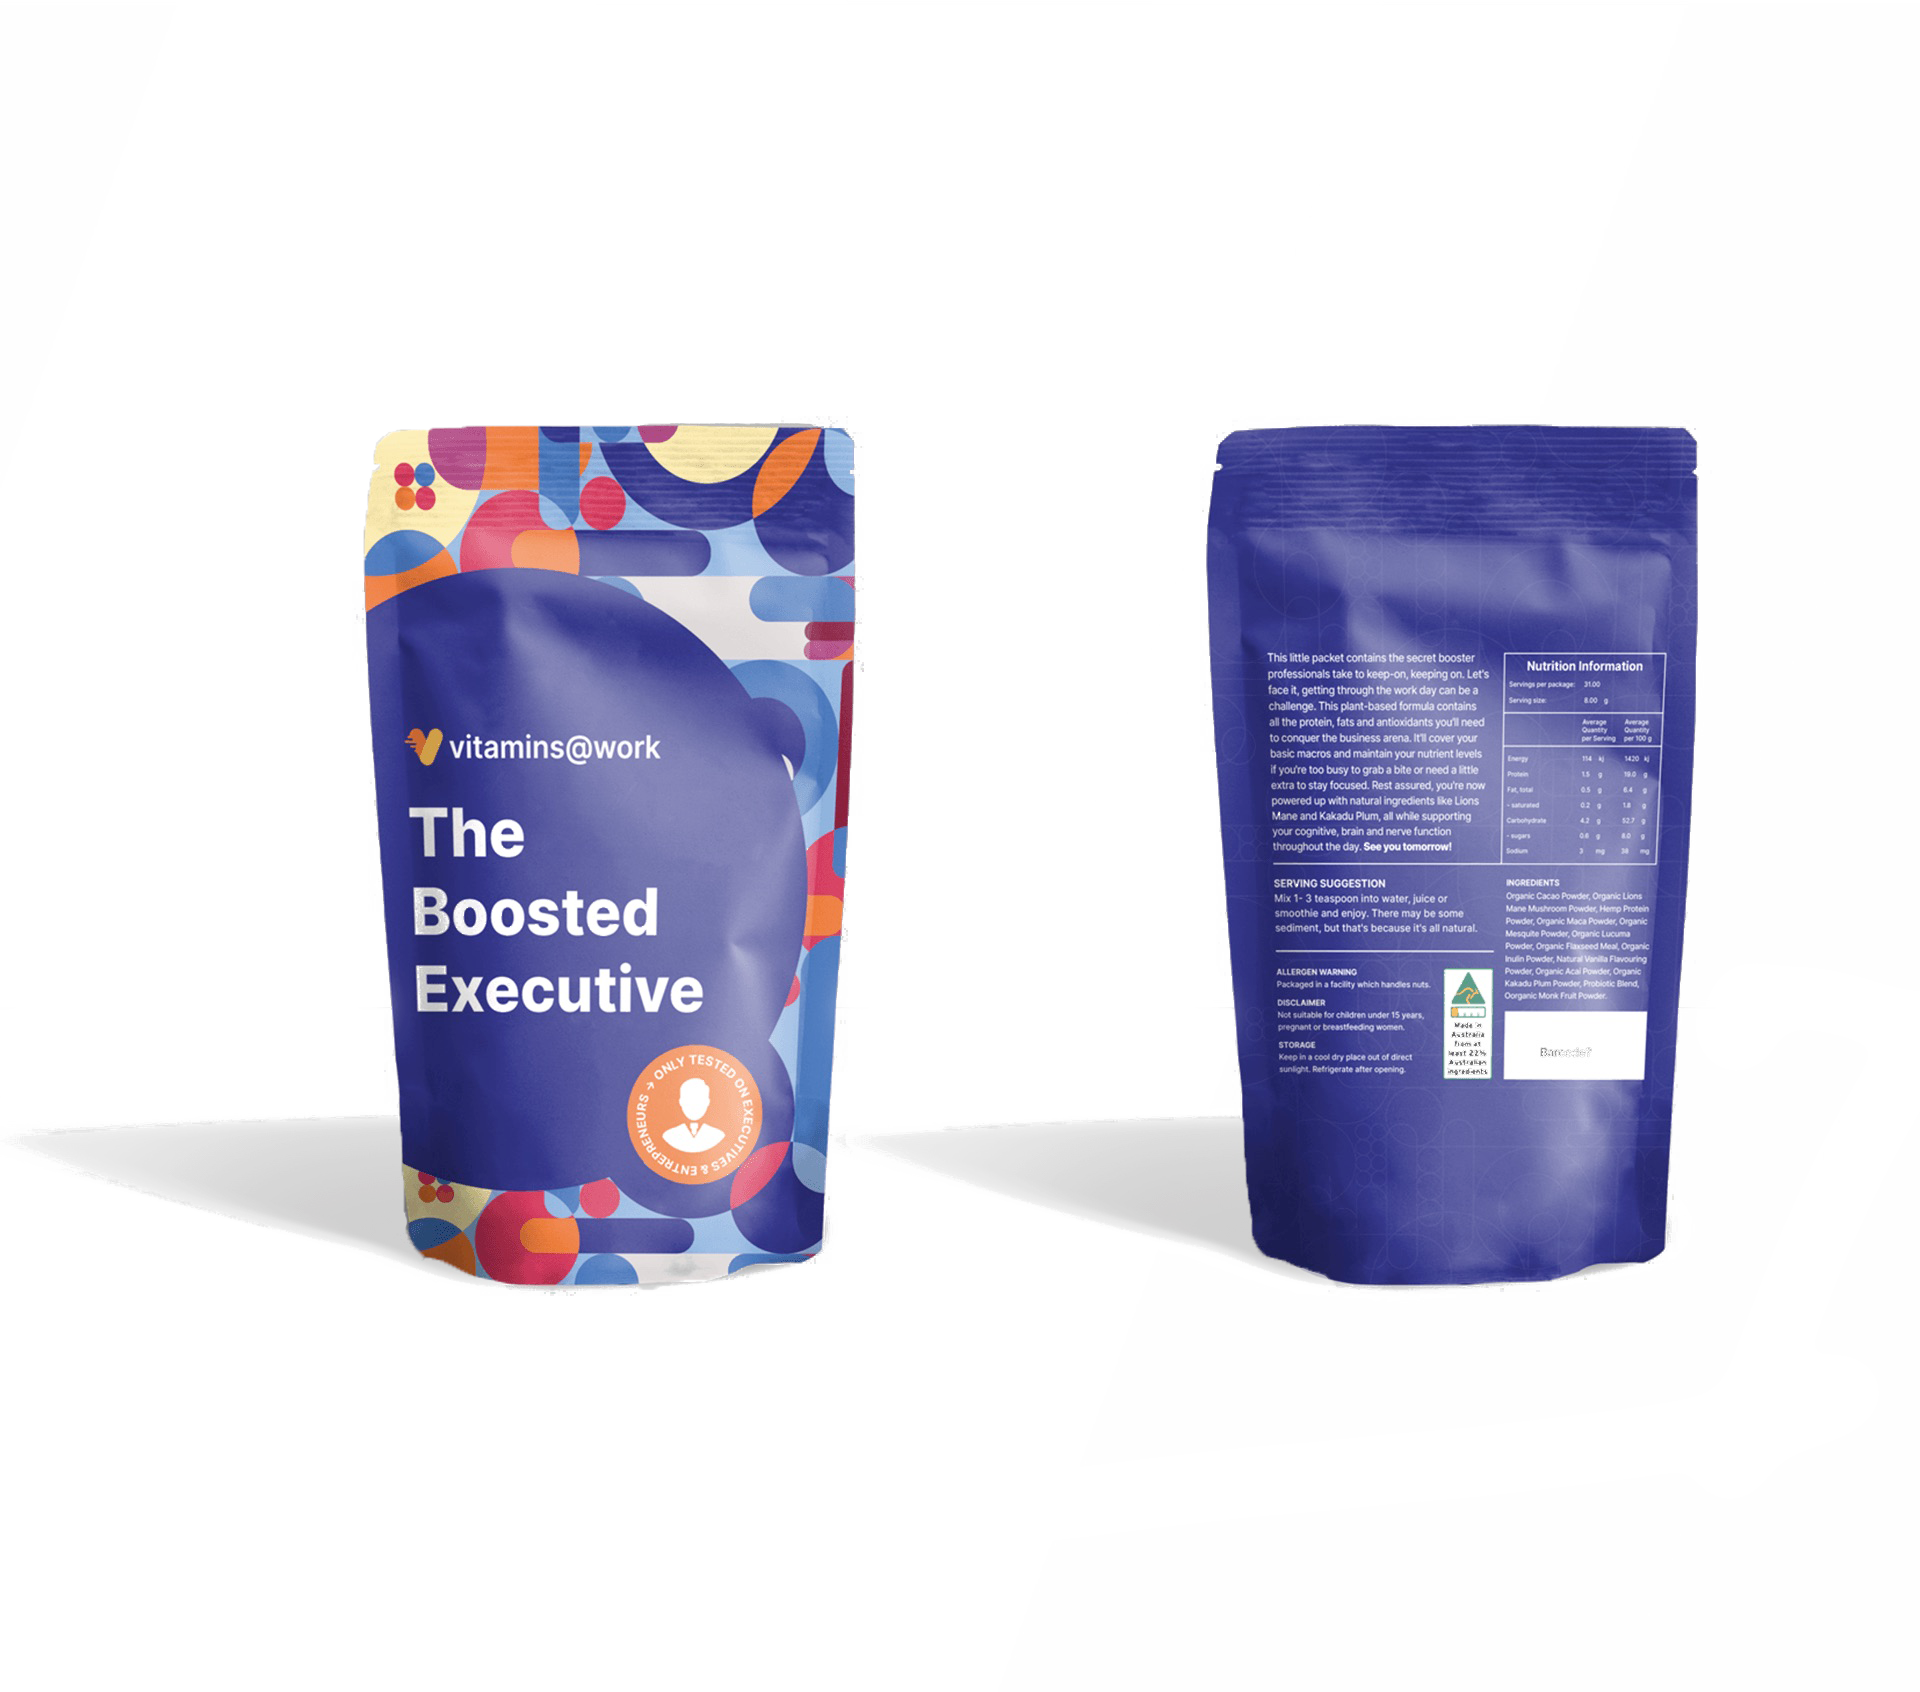 Mockup of packaging design after it has been designed by Persuaders